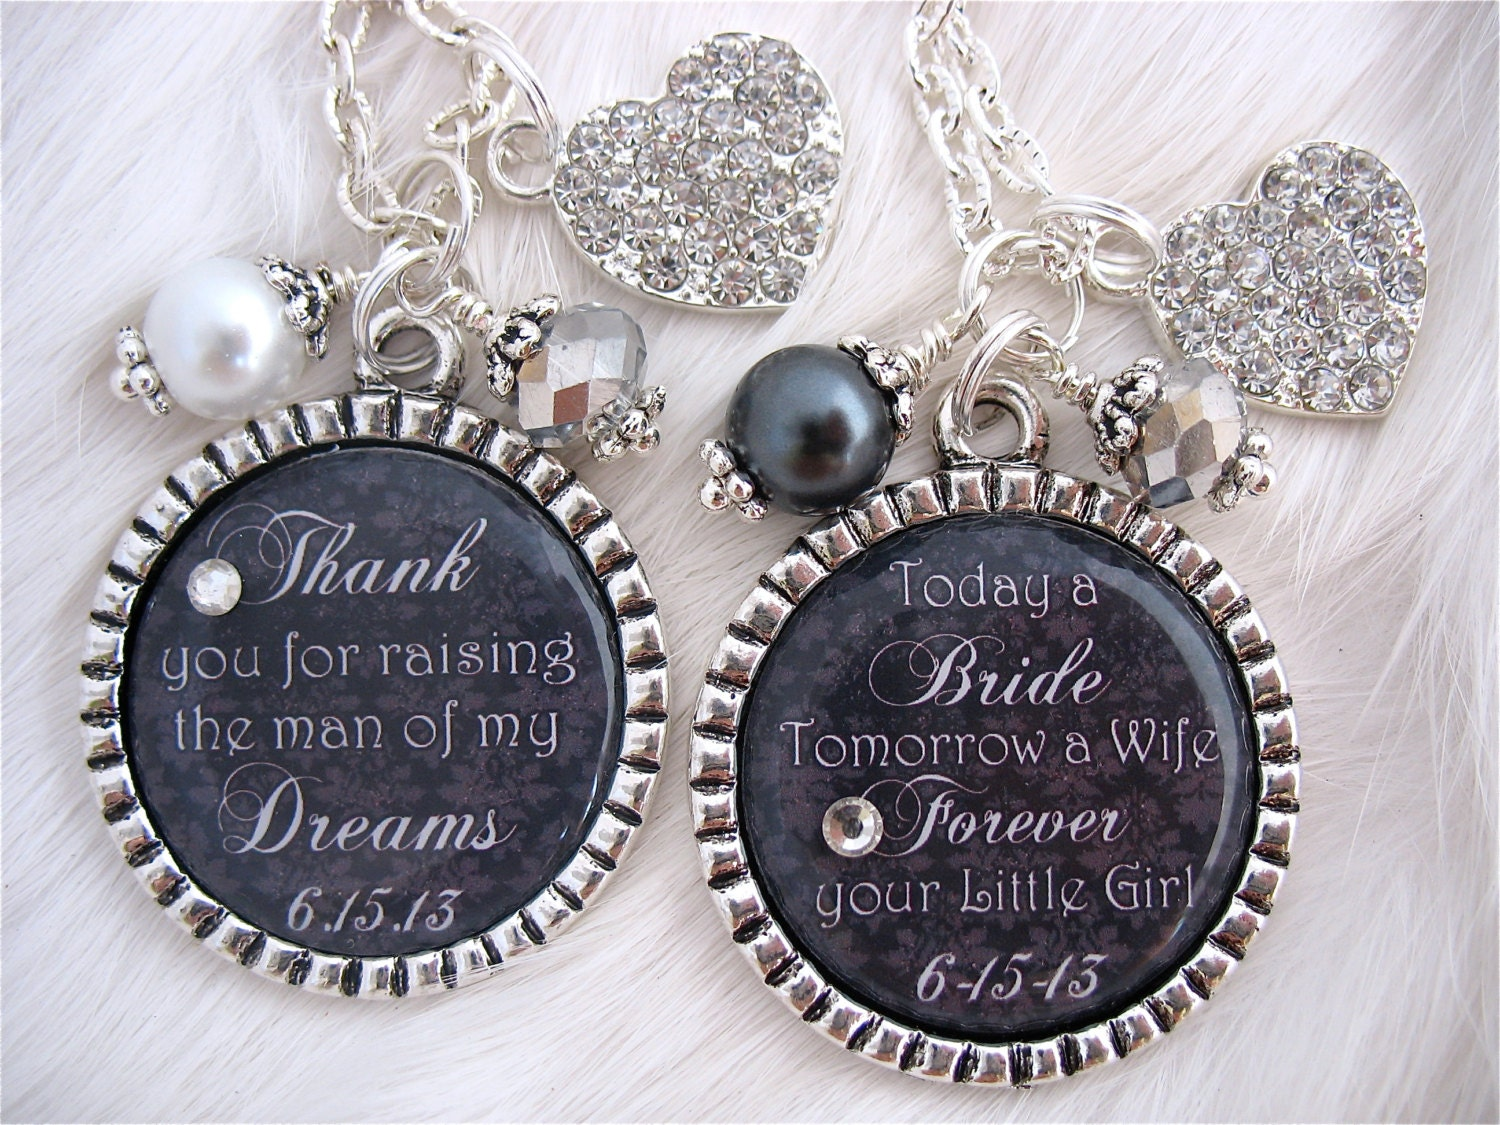 Wedding Gift Jewelry: MOTHER Of The BRIDE Gift Mother Of GROOM Wedding Jewelry